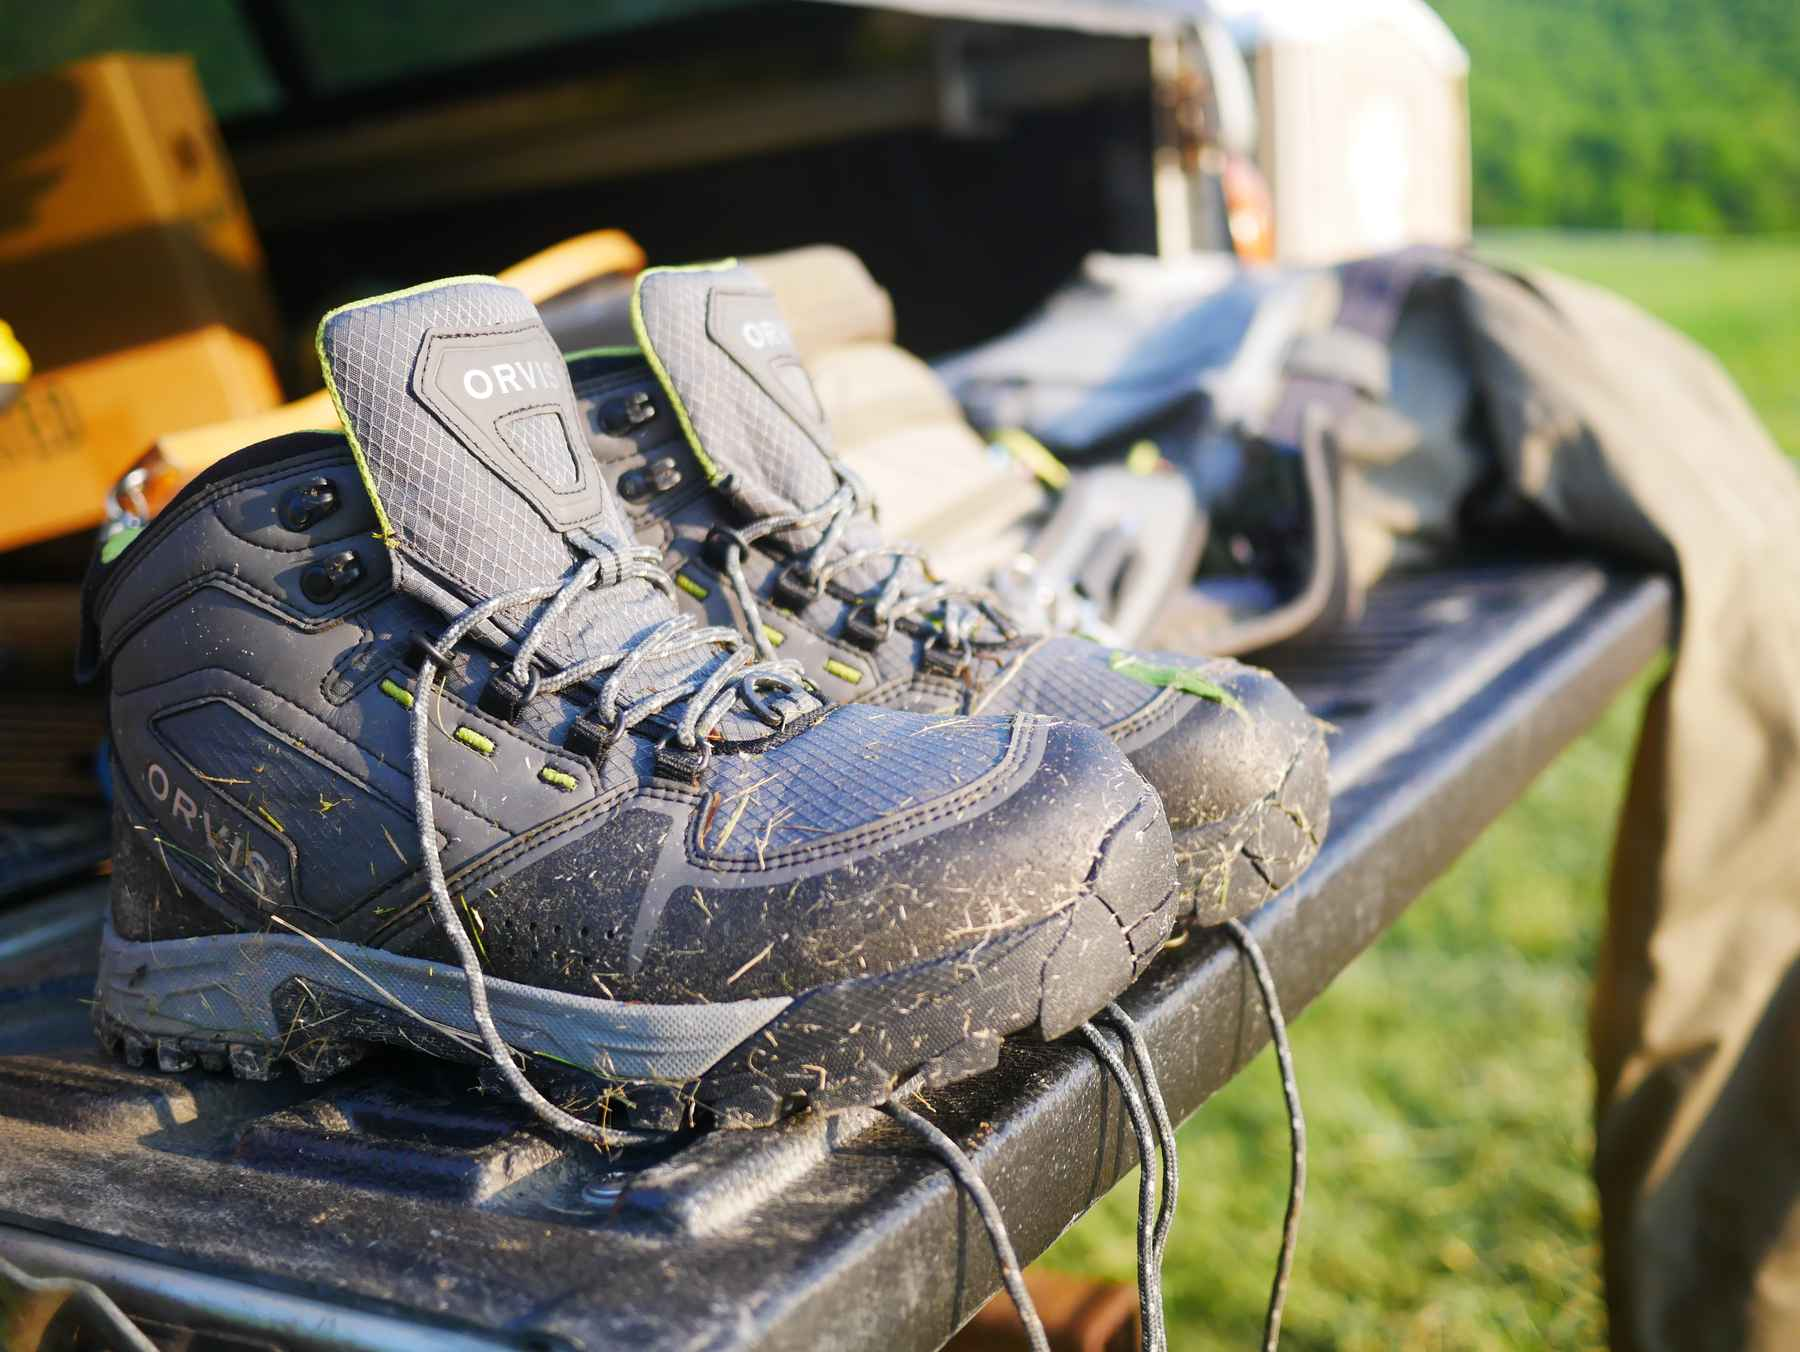 Review: Orvis Ultralight Wading Boots